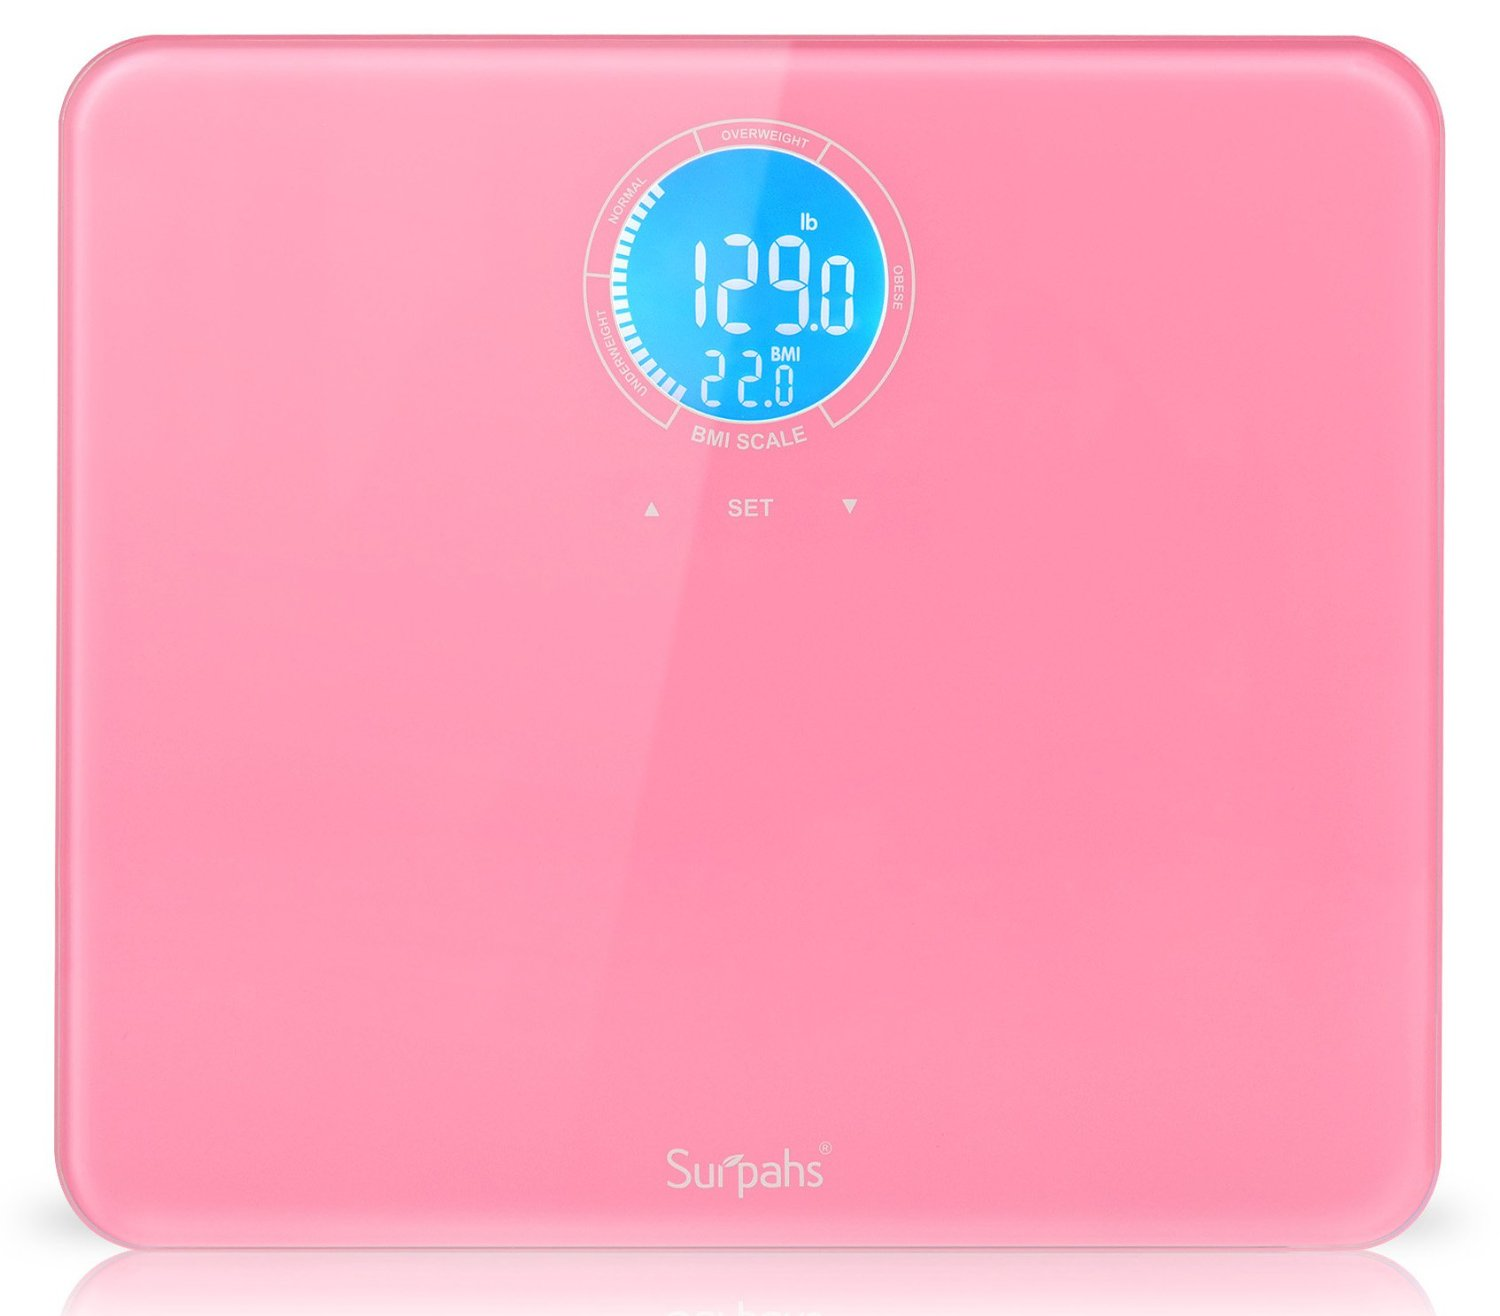 Surpahs Bathroom Scale With BMI Calculation Review